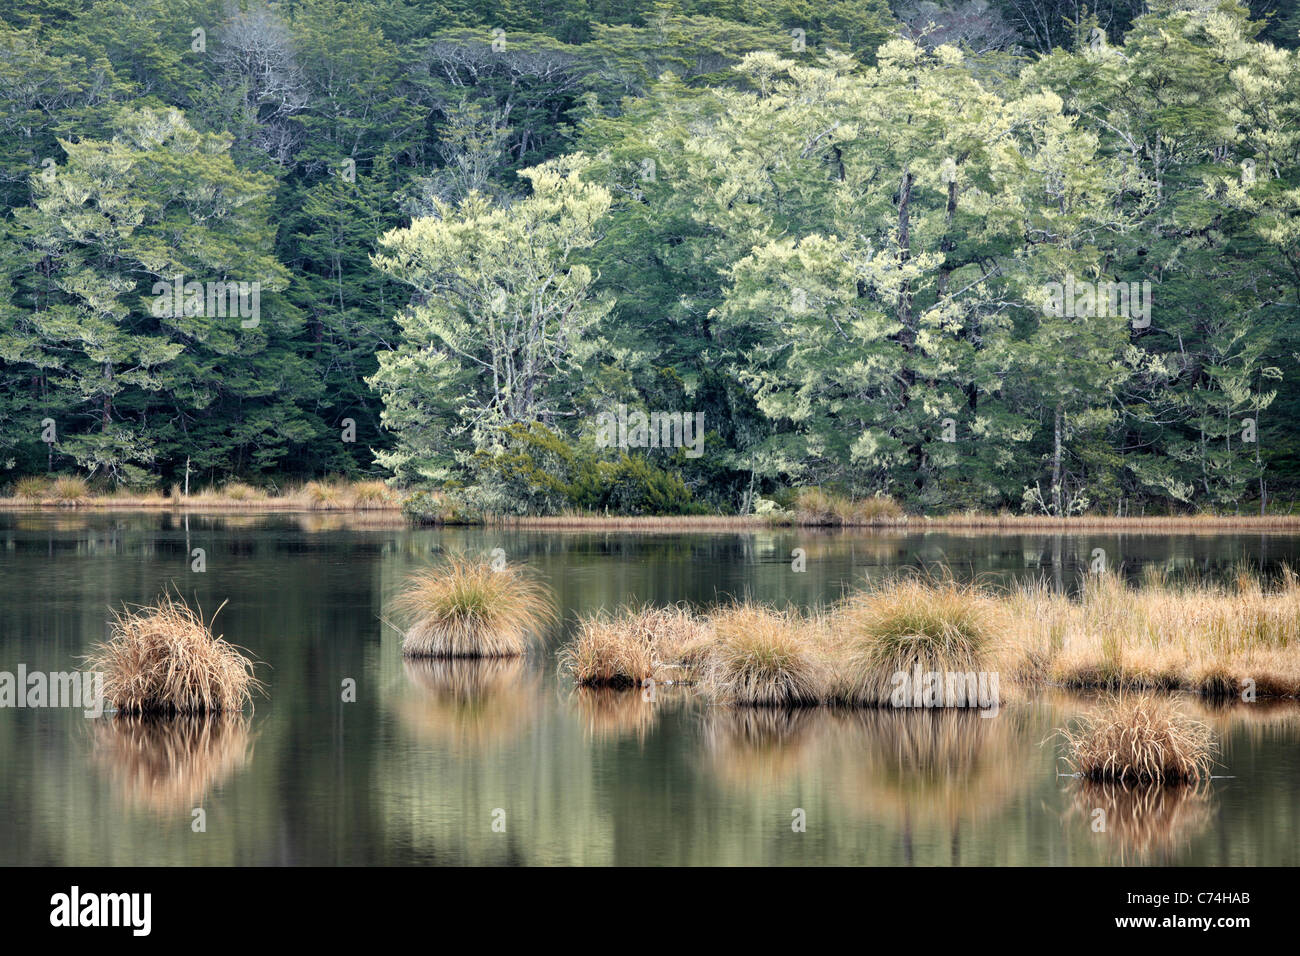 Moss covers the trees of the Snowden Forest near the shore of South Mavora Lake in New Zealand - Stock Image